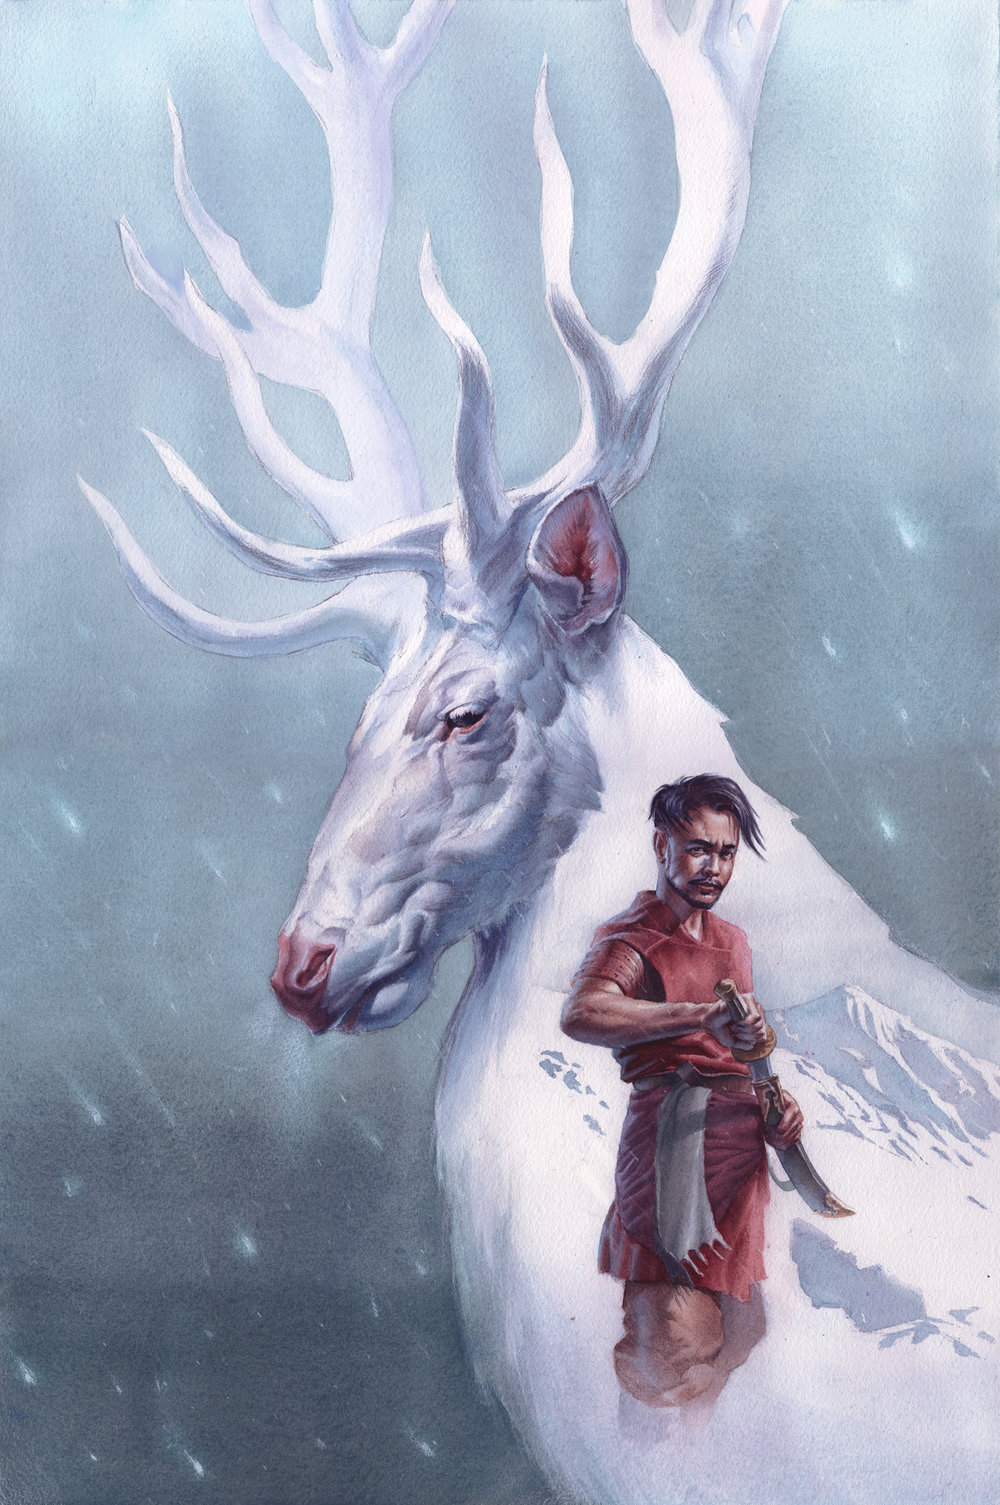 Atilla and the Stag